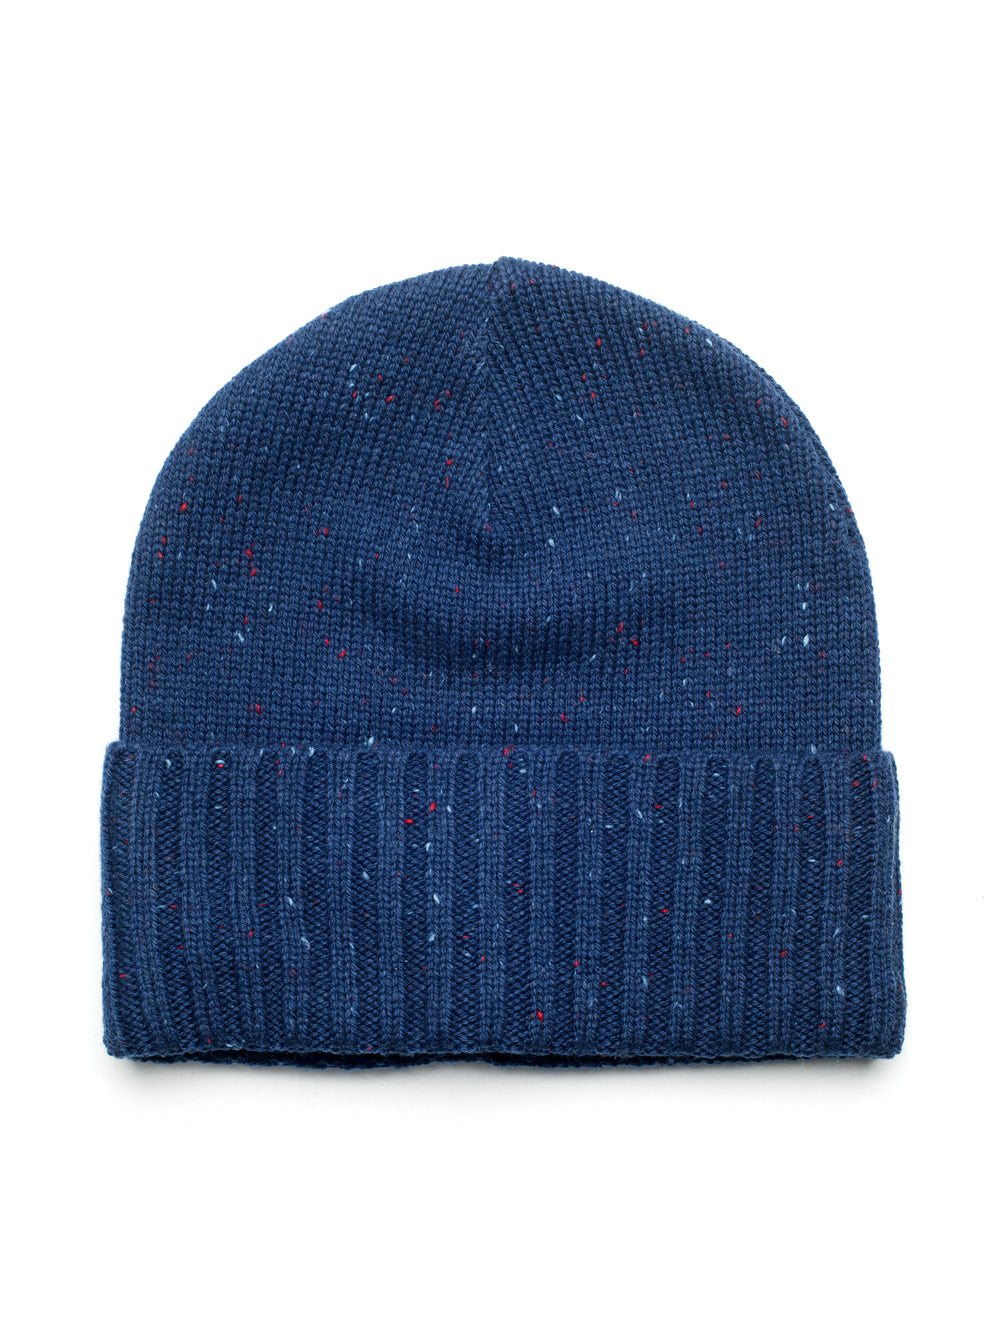 NSW CUFFED BEANIE - BLUE VOID